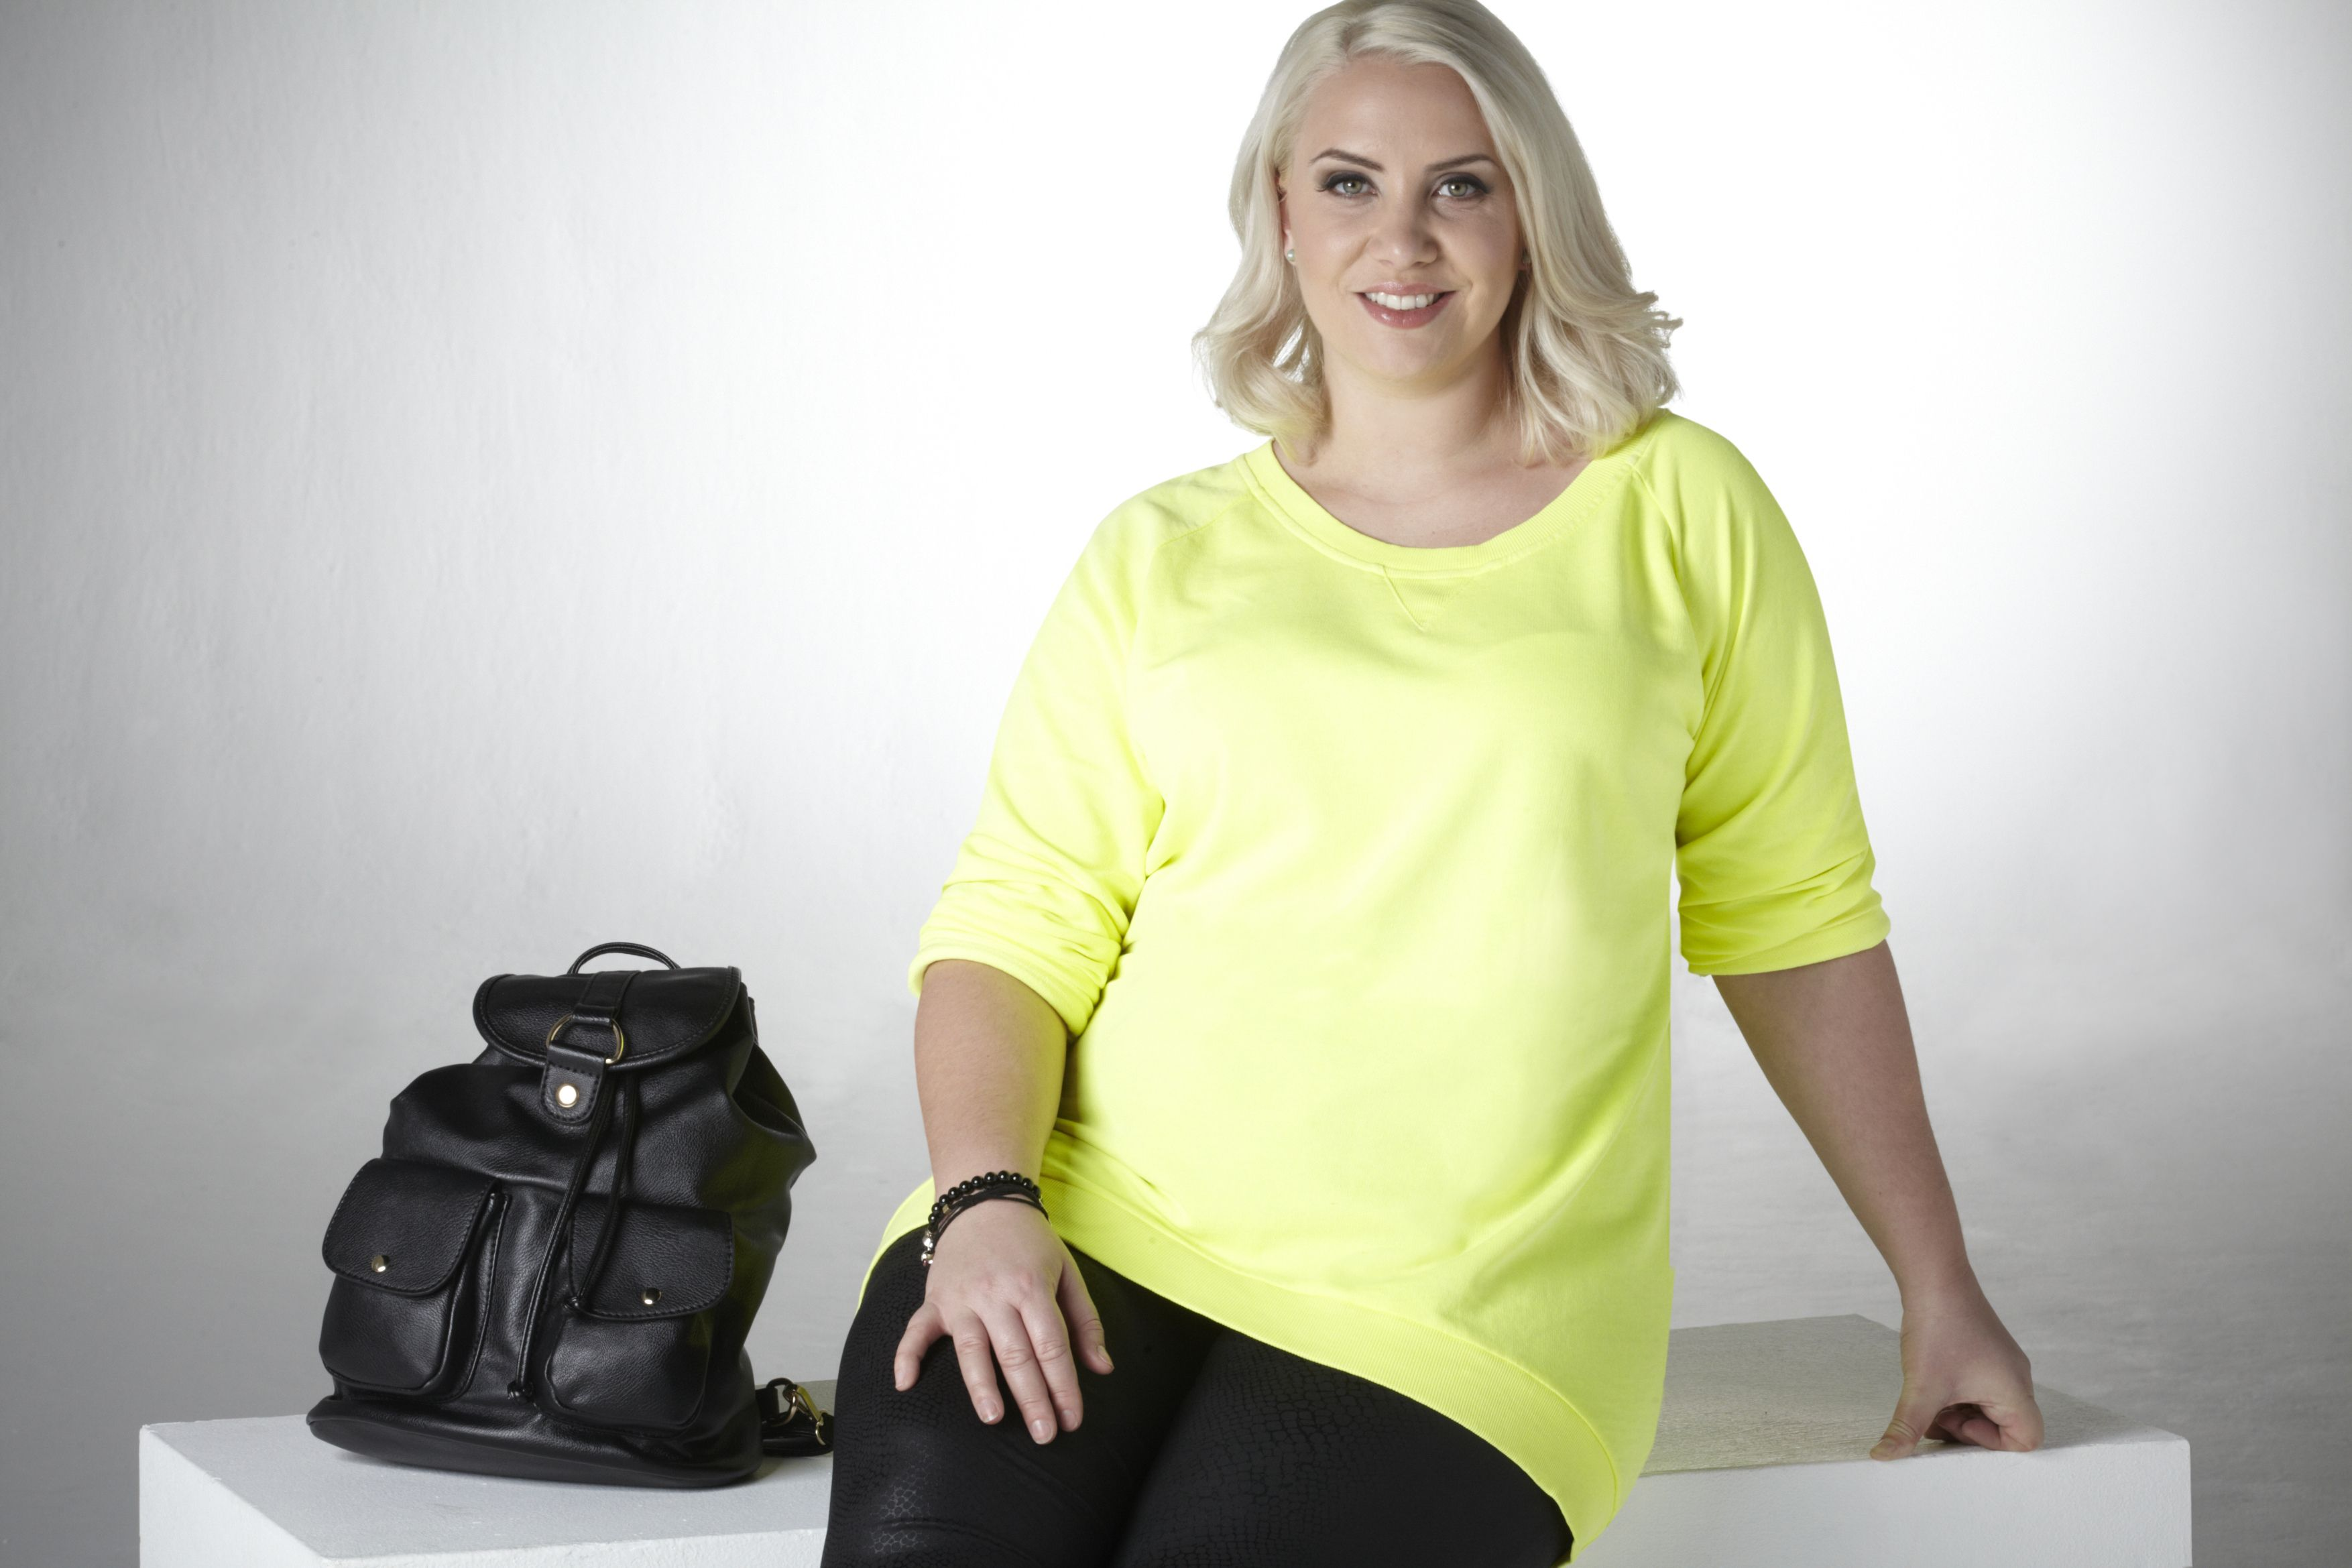 Looking fab in neon http://www.fashionworld.co.uk/shop/cut-out-shoulder-jumper/qy167/product/details/show.action?pdBoUid=7171 #ClaireRichardsFW